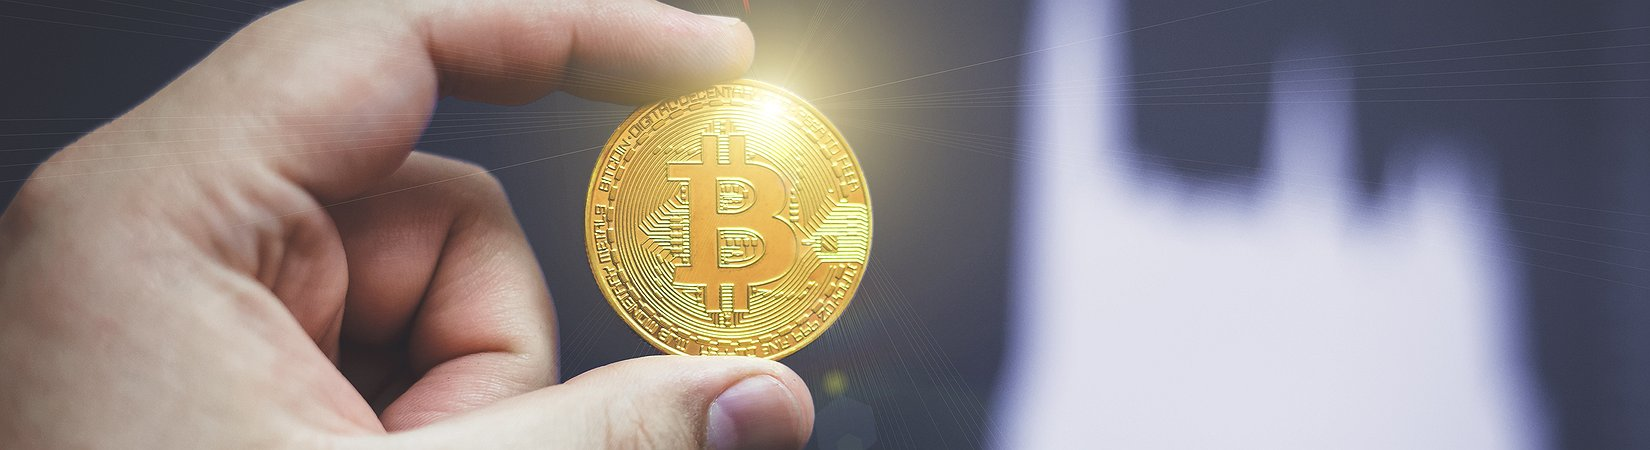 Analyst Predicts Bicoin Price to Rise above $50,000